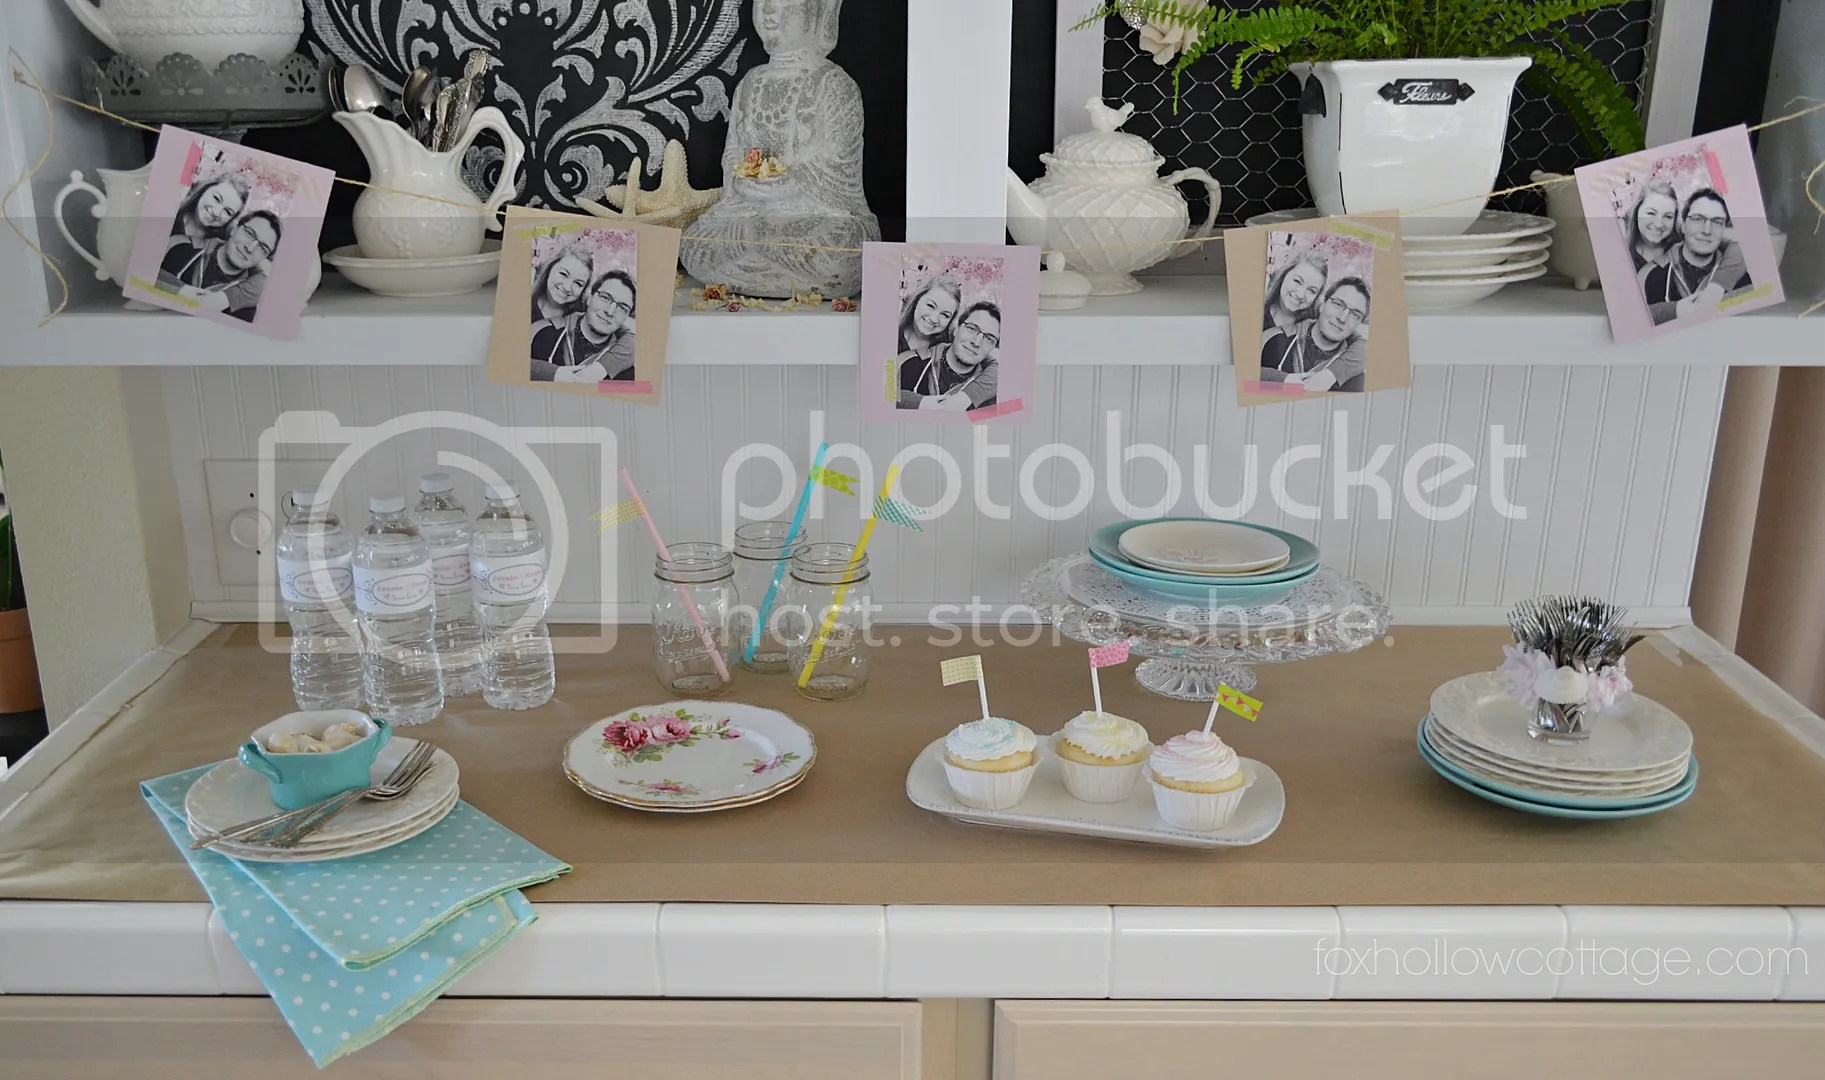 Best Budget Bridal Shower Decor And Ideas Fox Hollow Cottage This Month